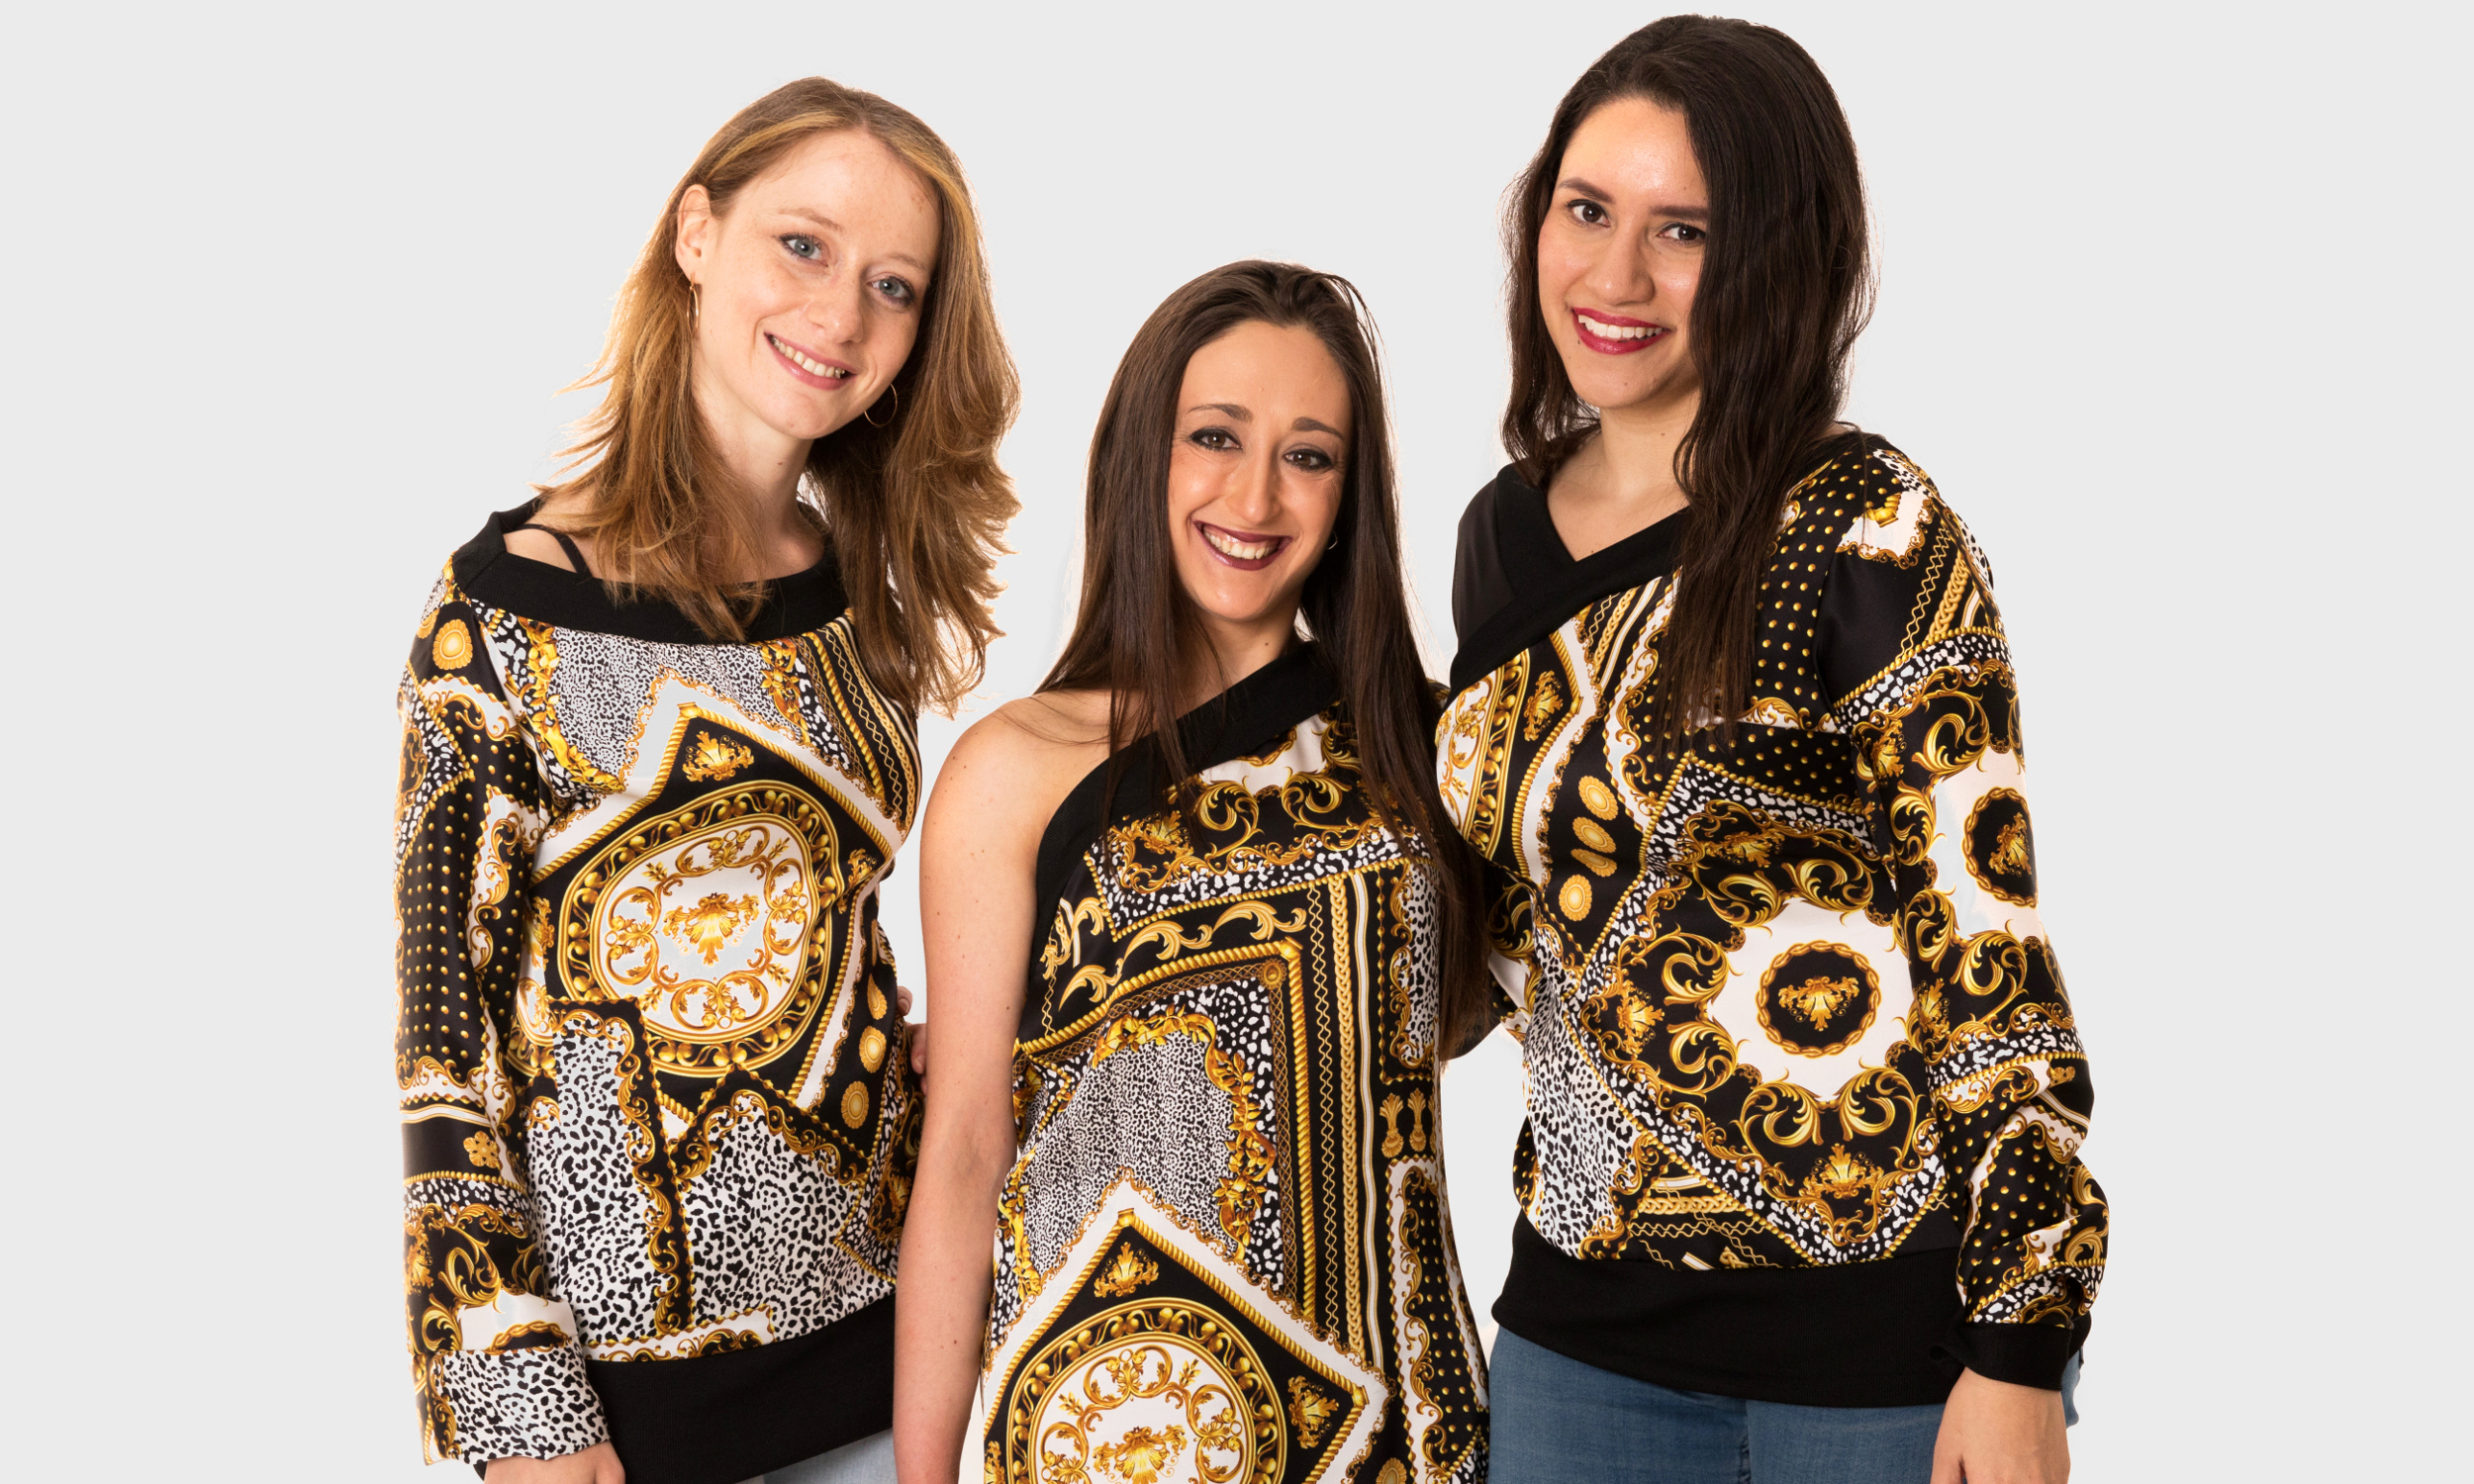 Dahrah Fashion summer collection of sustainable clothing for women.